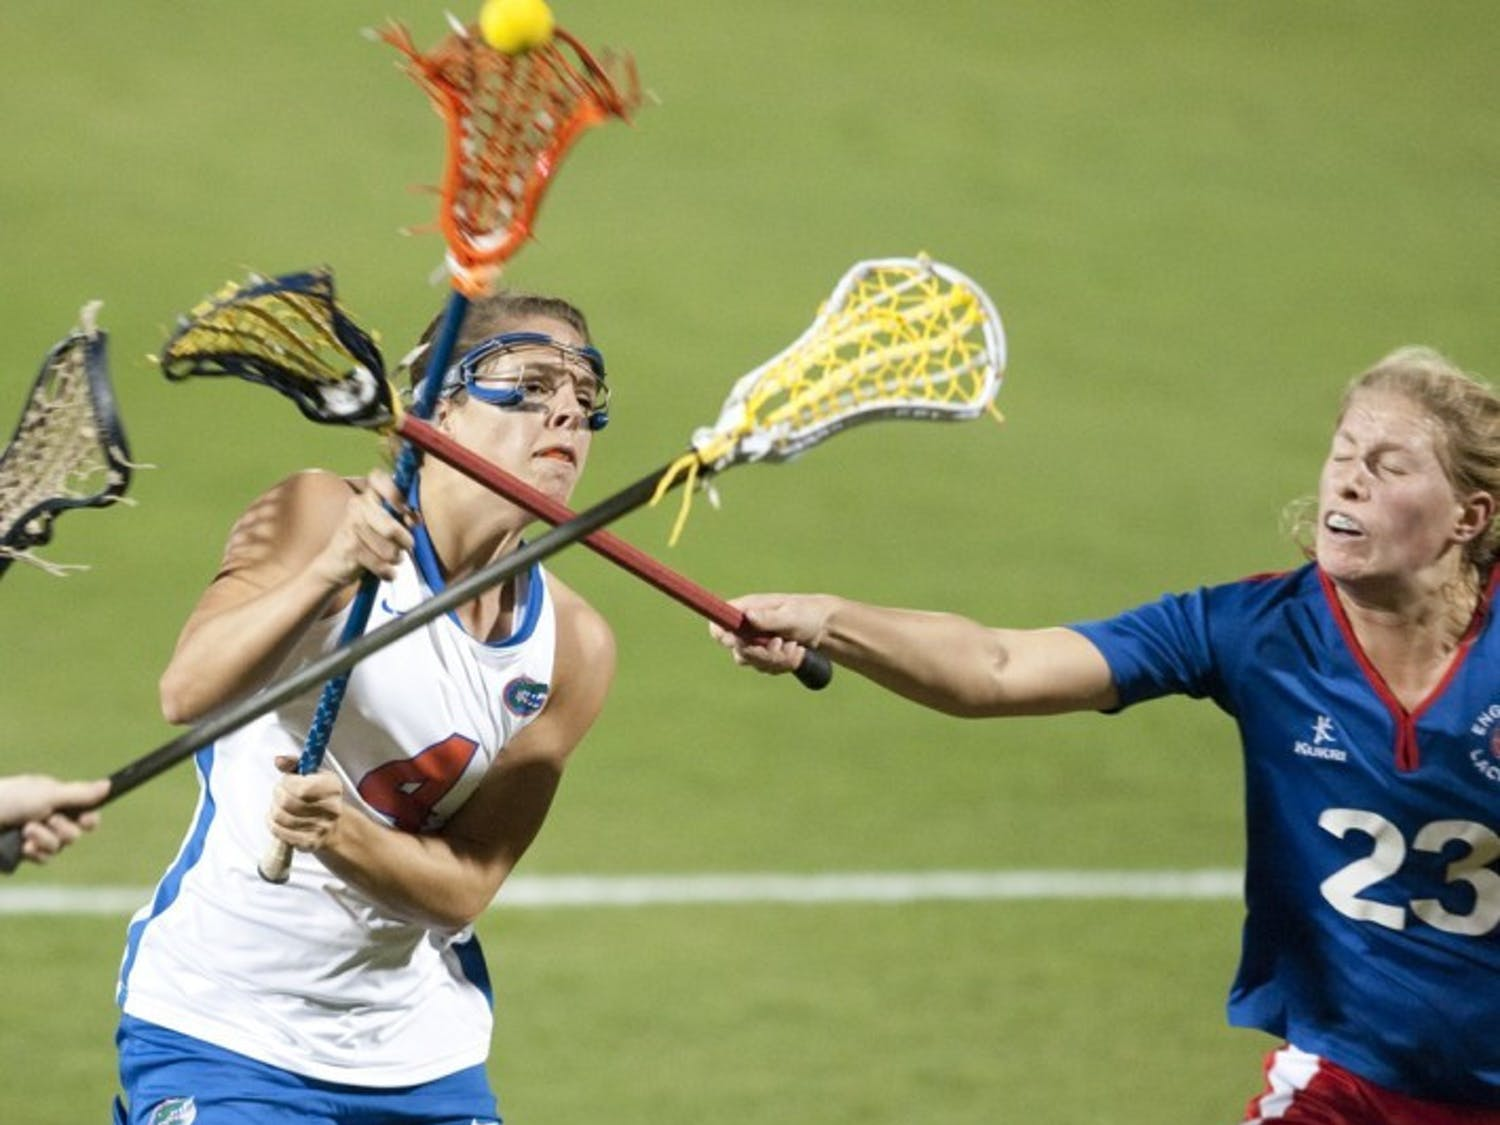 Florida junior attacker Kitty Cullen (left), who scored three goals in UF's season-opening loss to North Carolina on Saturday, said the Gators did not play with enough intensity throughout the game after opening up an early two-goal lead.